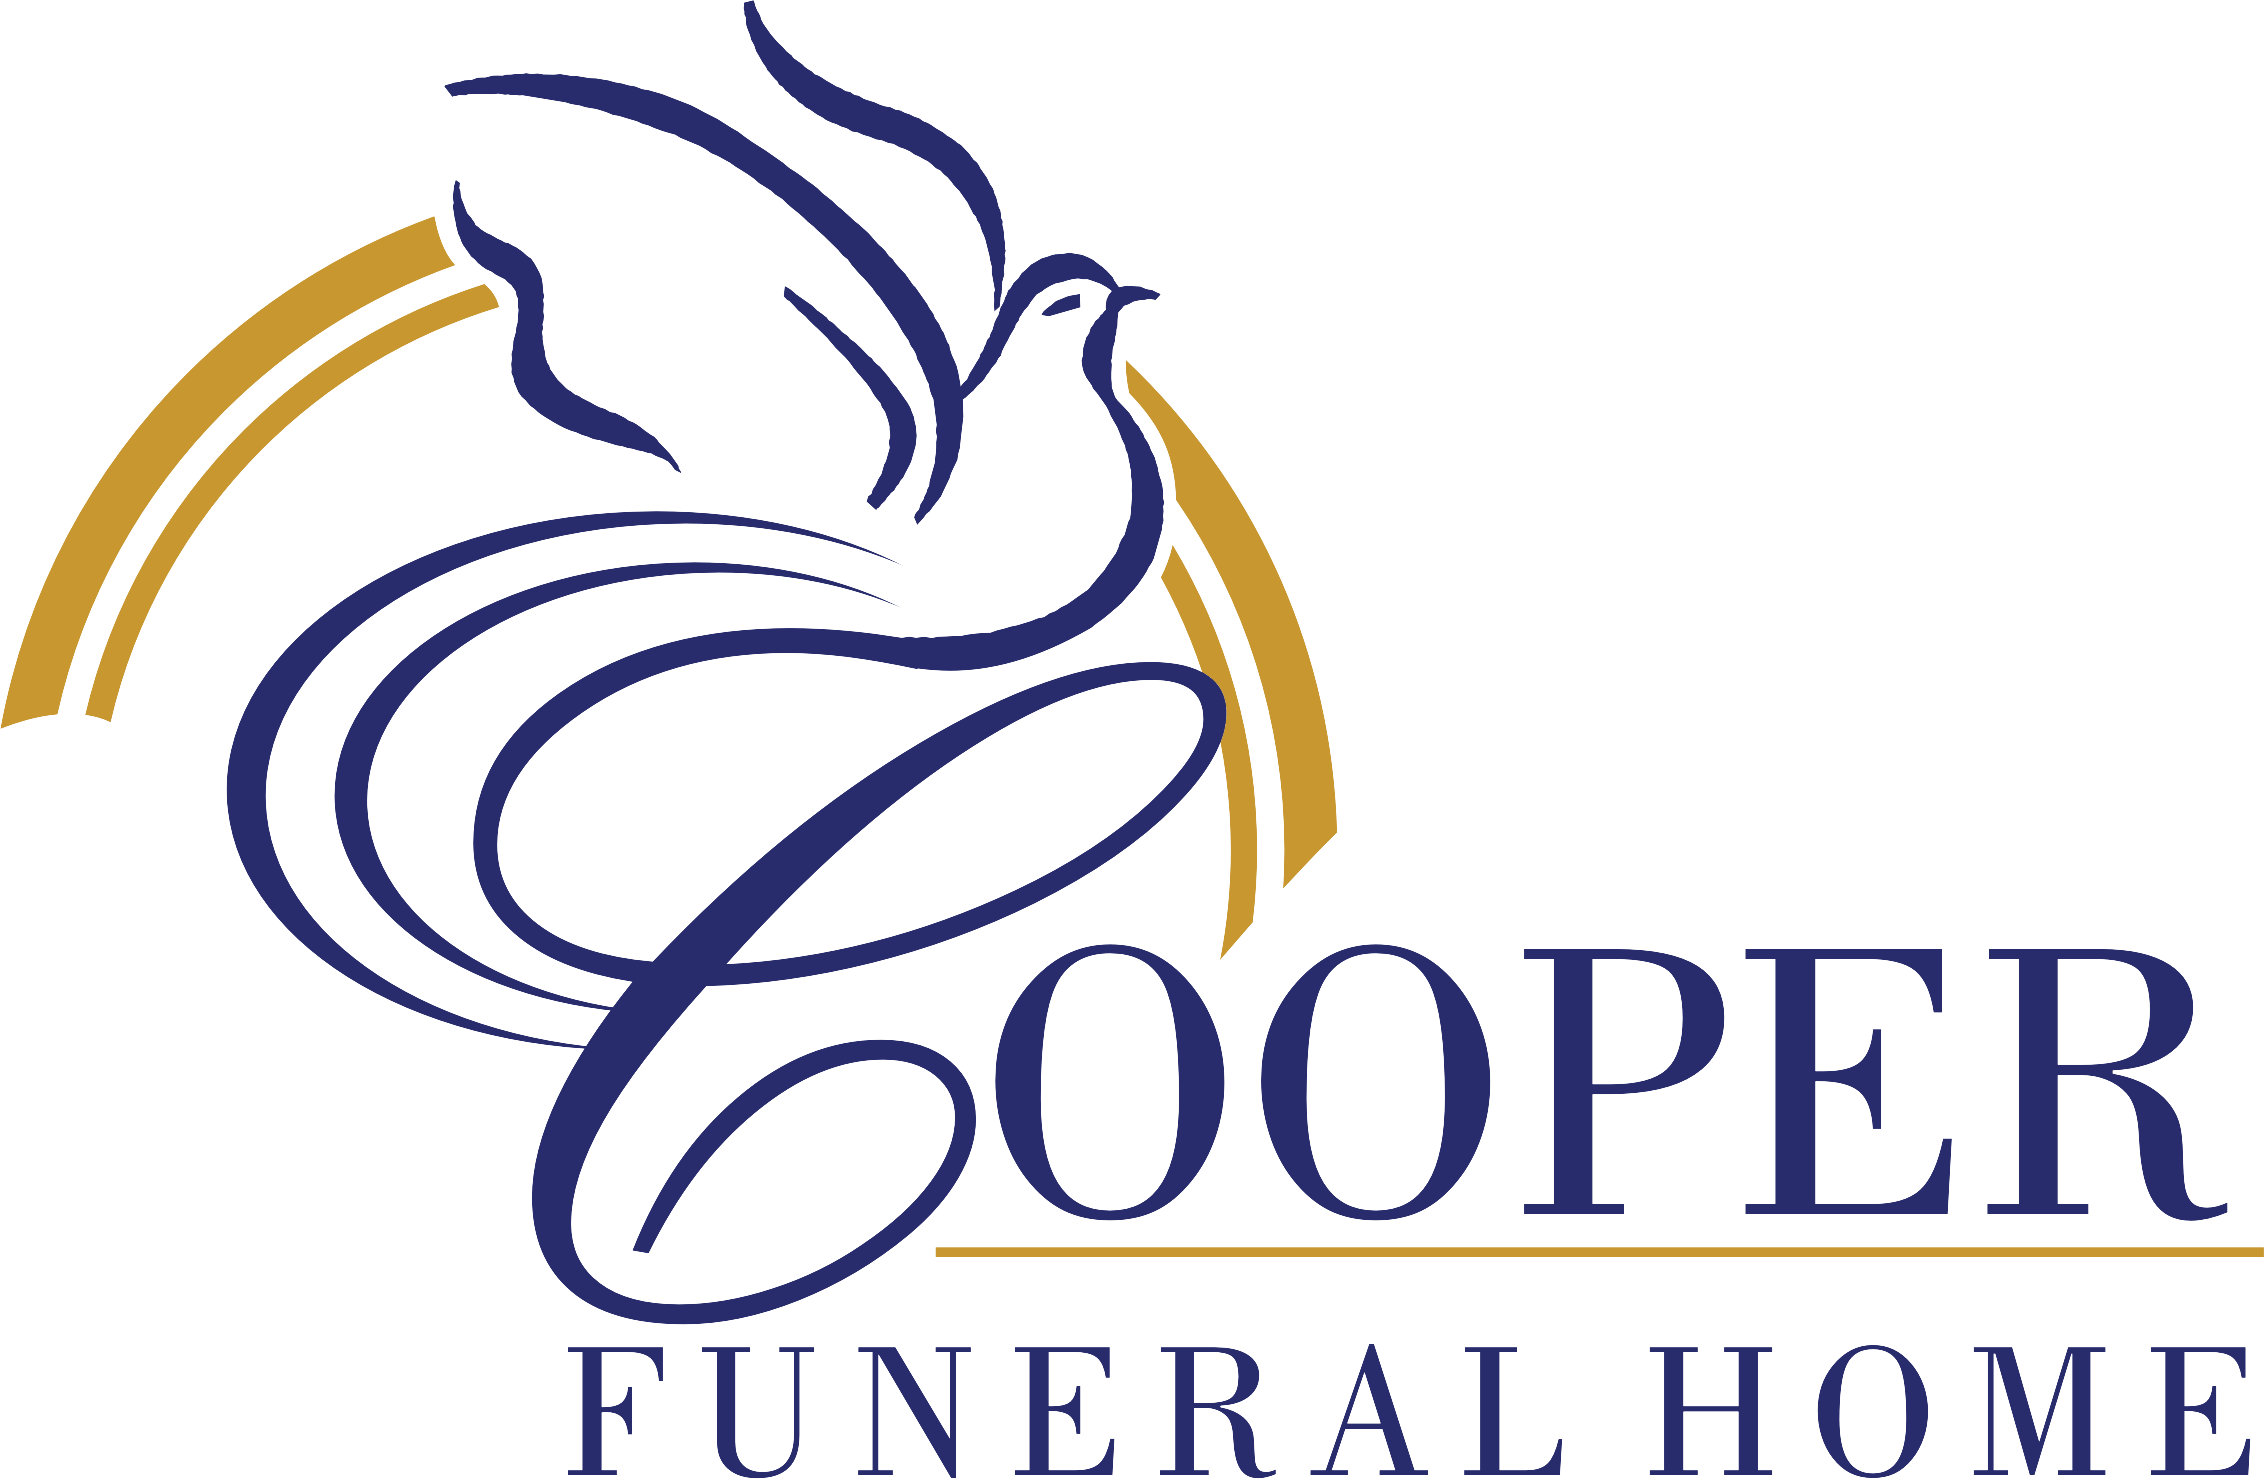 Cooper Funeral Home